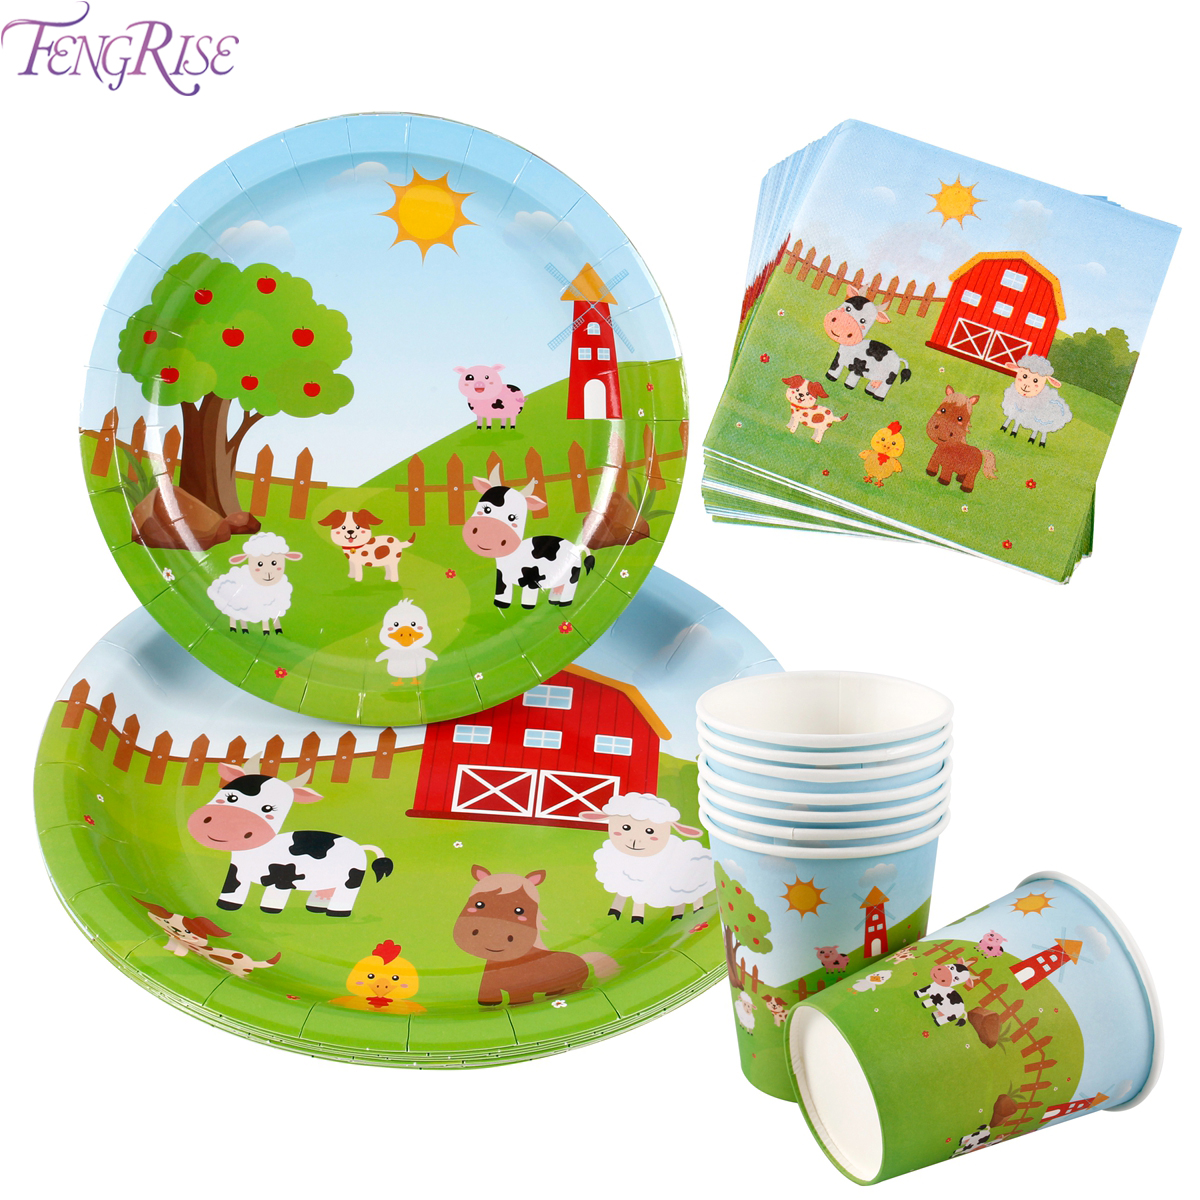 FENGRISE Farm Animal Birthday Party Supplies Paper Napkins Decor Disposable Tableware Plate Tablecloth Cup